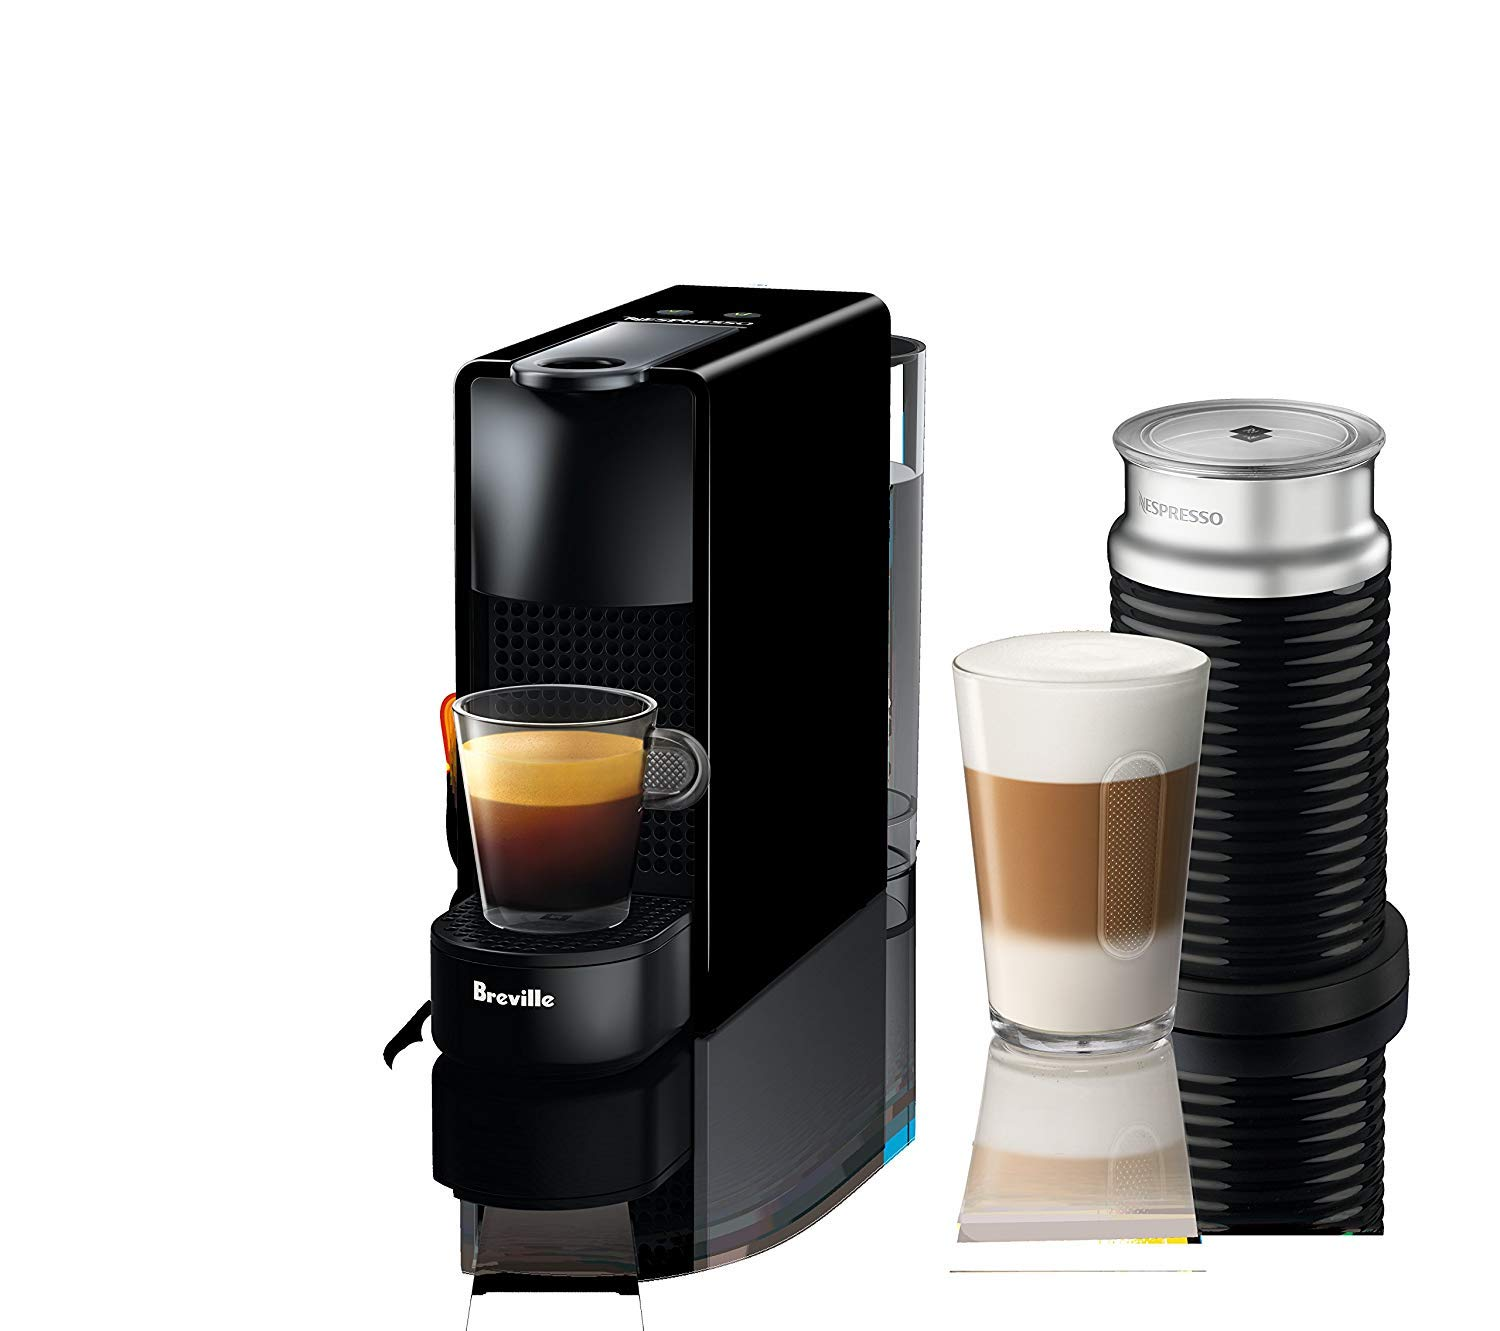 Nespresso VertuoLine Coffee and Espresso Maker with Aeroccino Plus Milk Frother, Black (Renewed) by Nestle Nespresso (Image #1)